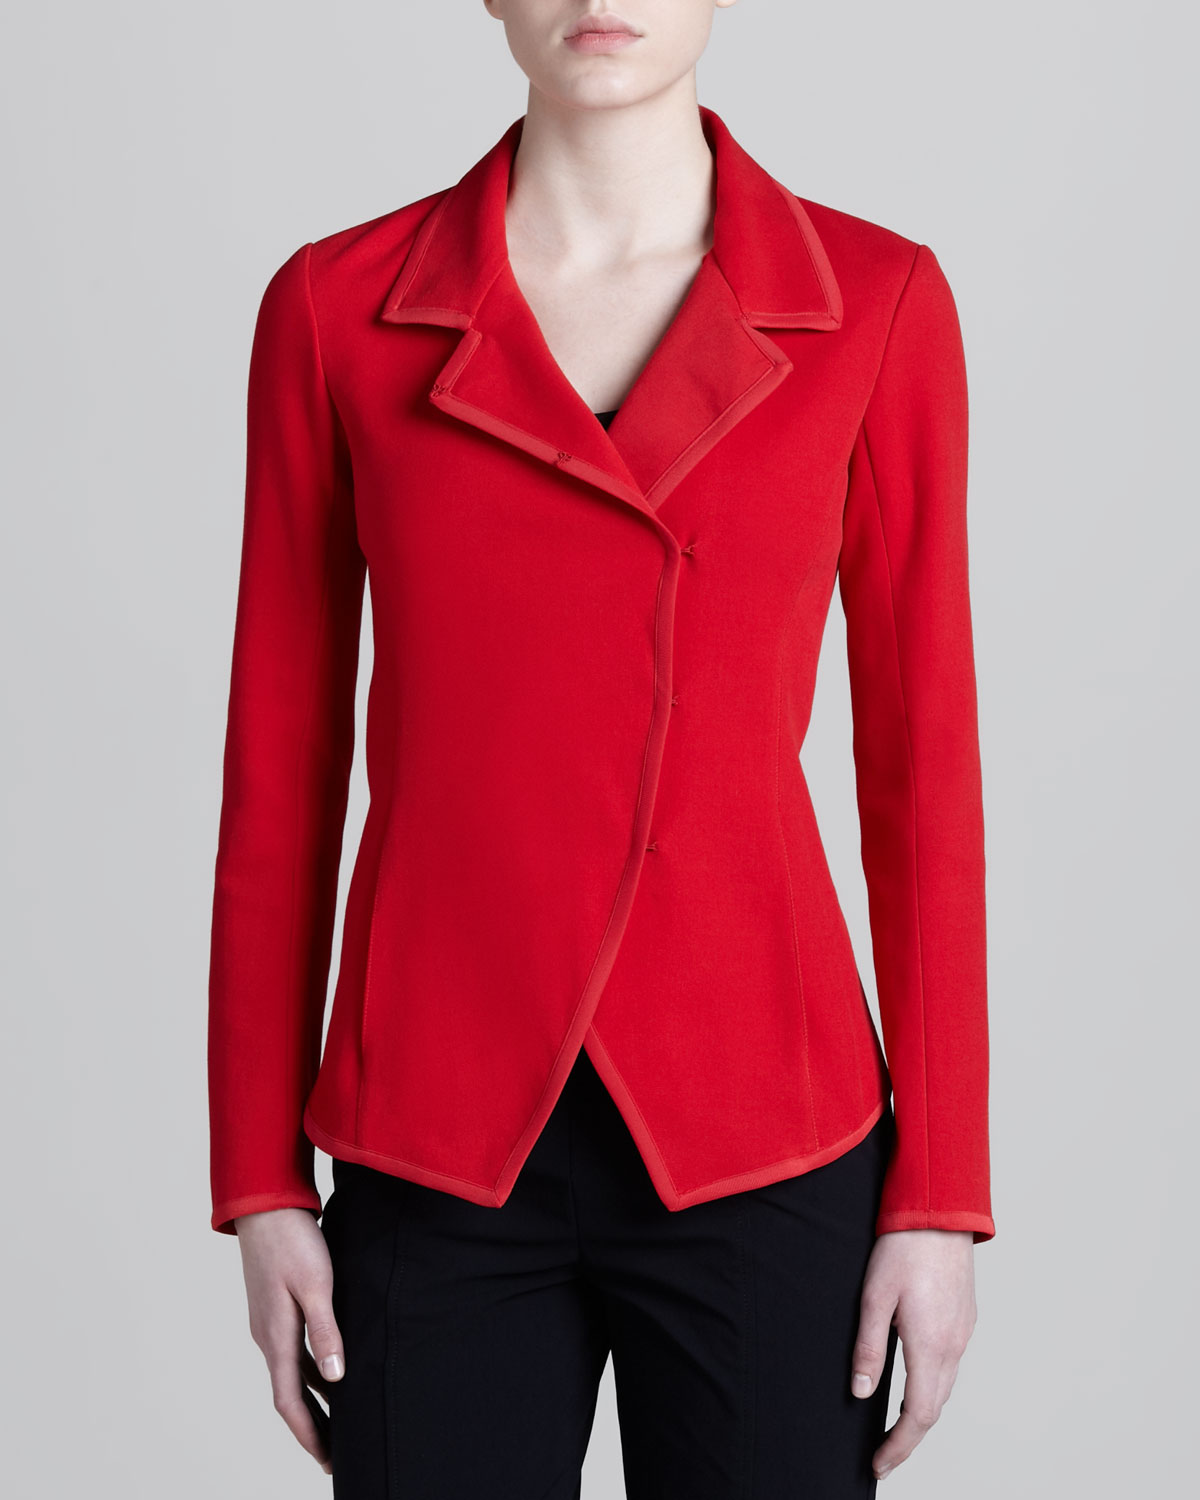 Lyst Donna Karan Convertible Collar Knit Jacket In Red